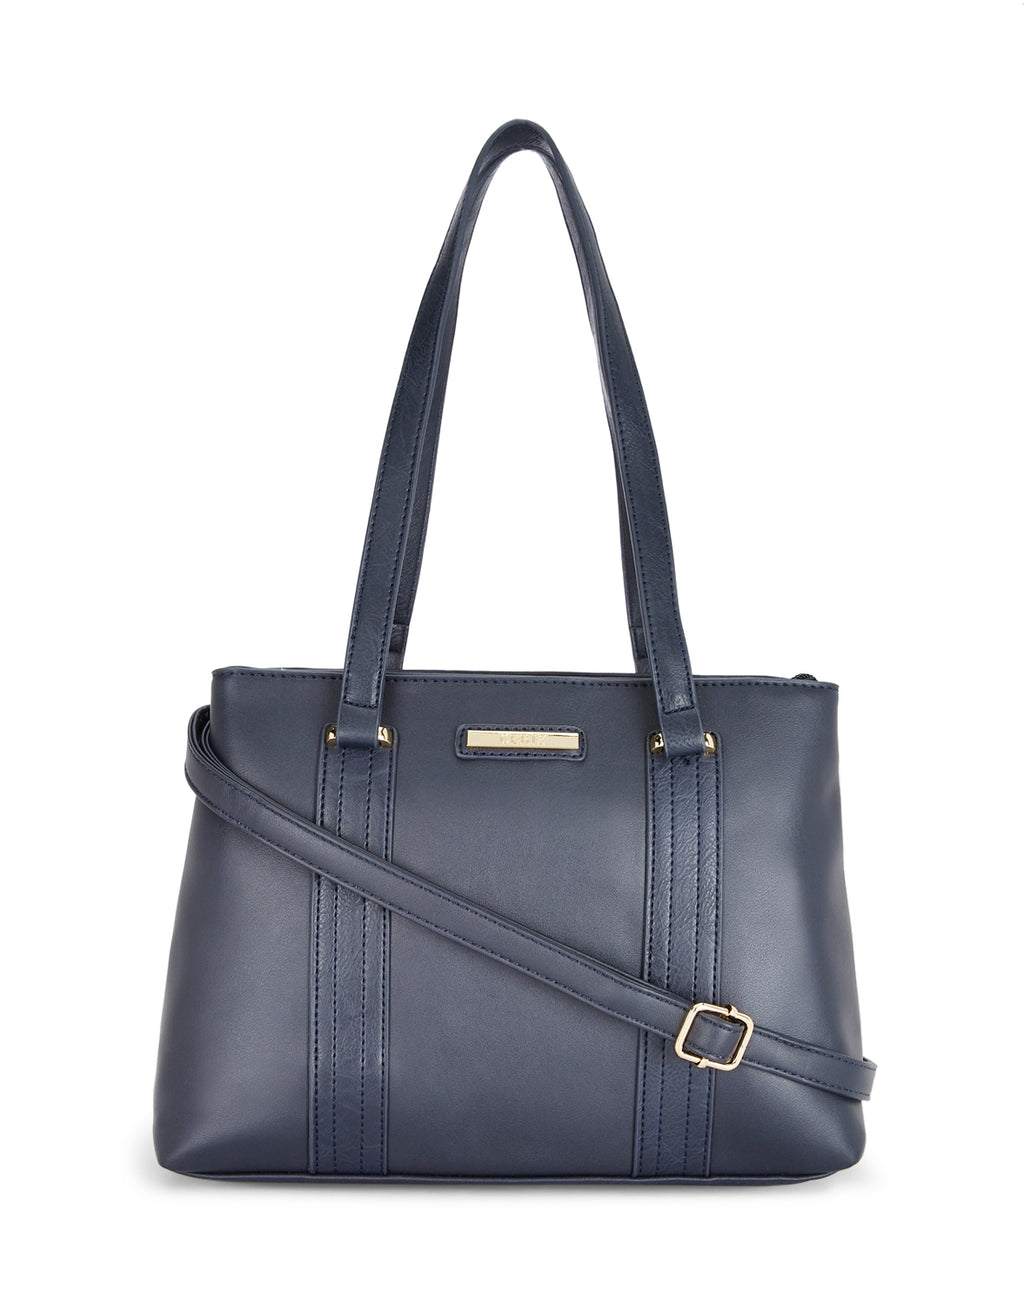 Alyssa Double Compartment Navy Handbag